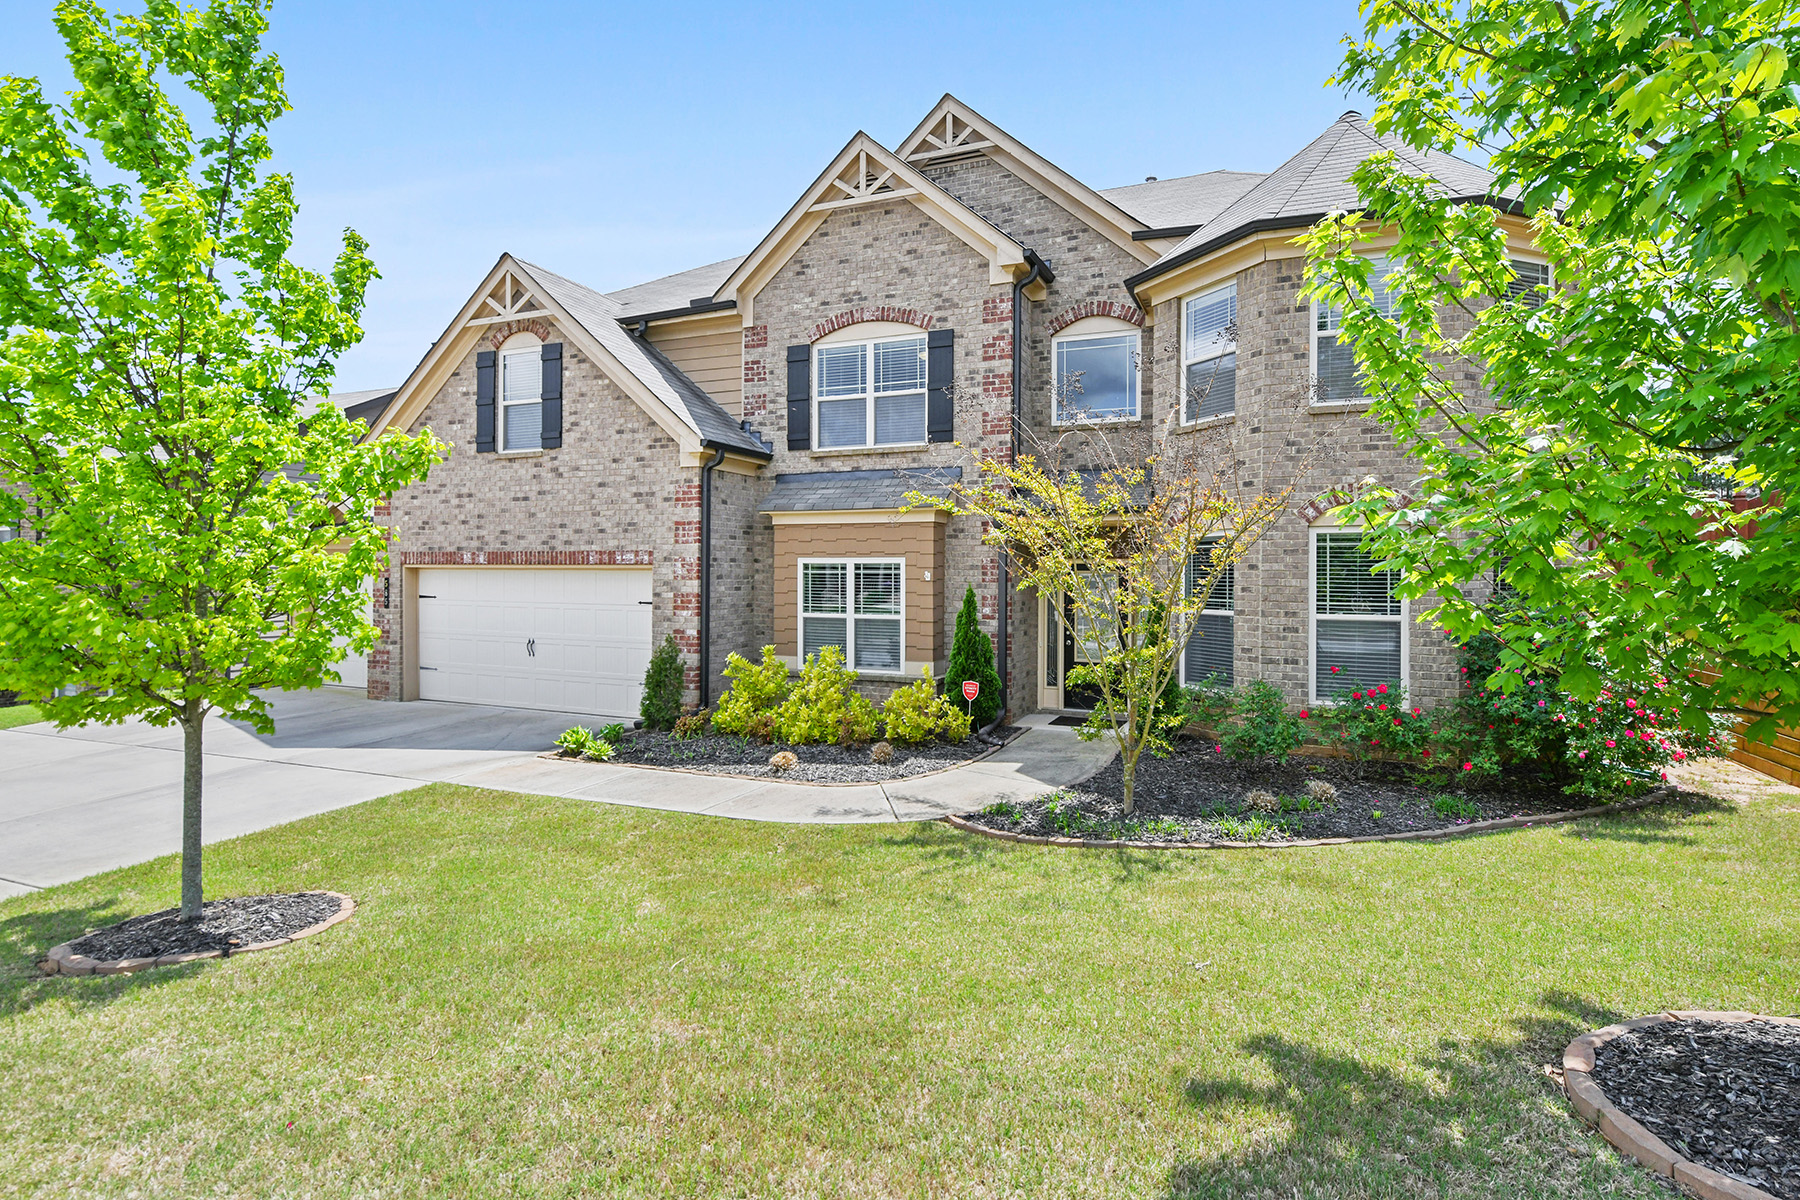 Single Family Homes for Sale at Georgeous Ivey Chase Home 585 Cape Ivey Drive Dacula, Georgia 30019 United States